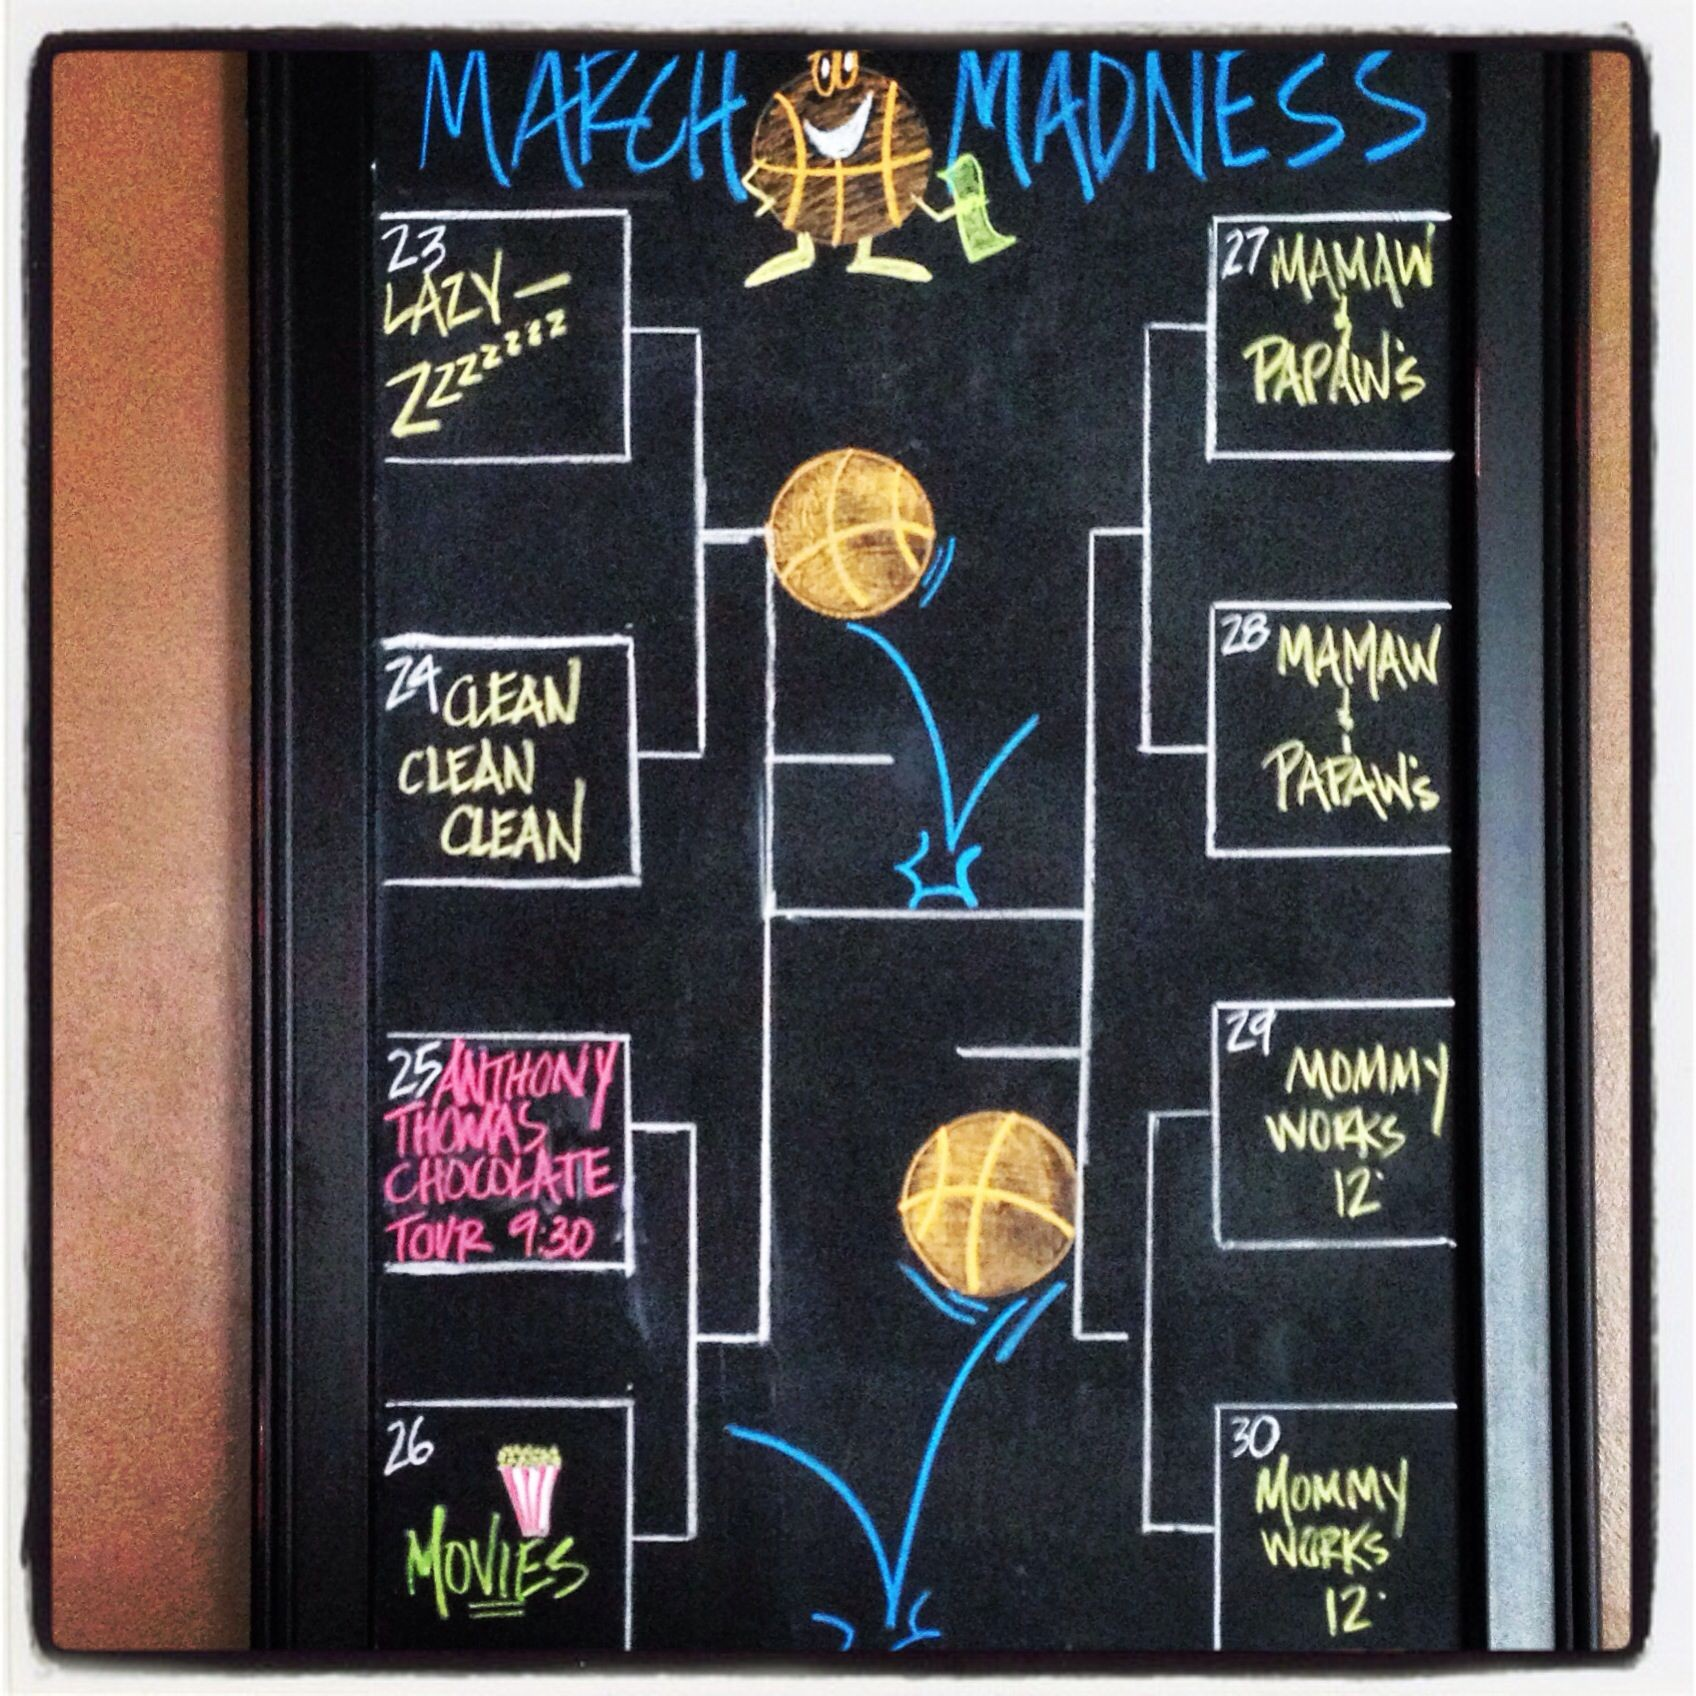 March Madness Weekly chalkboard Calendar